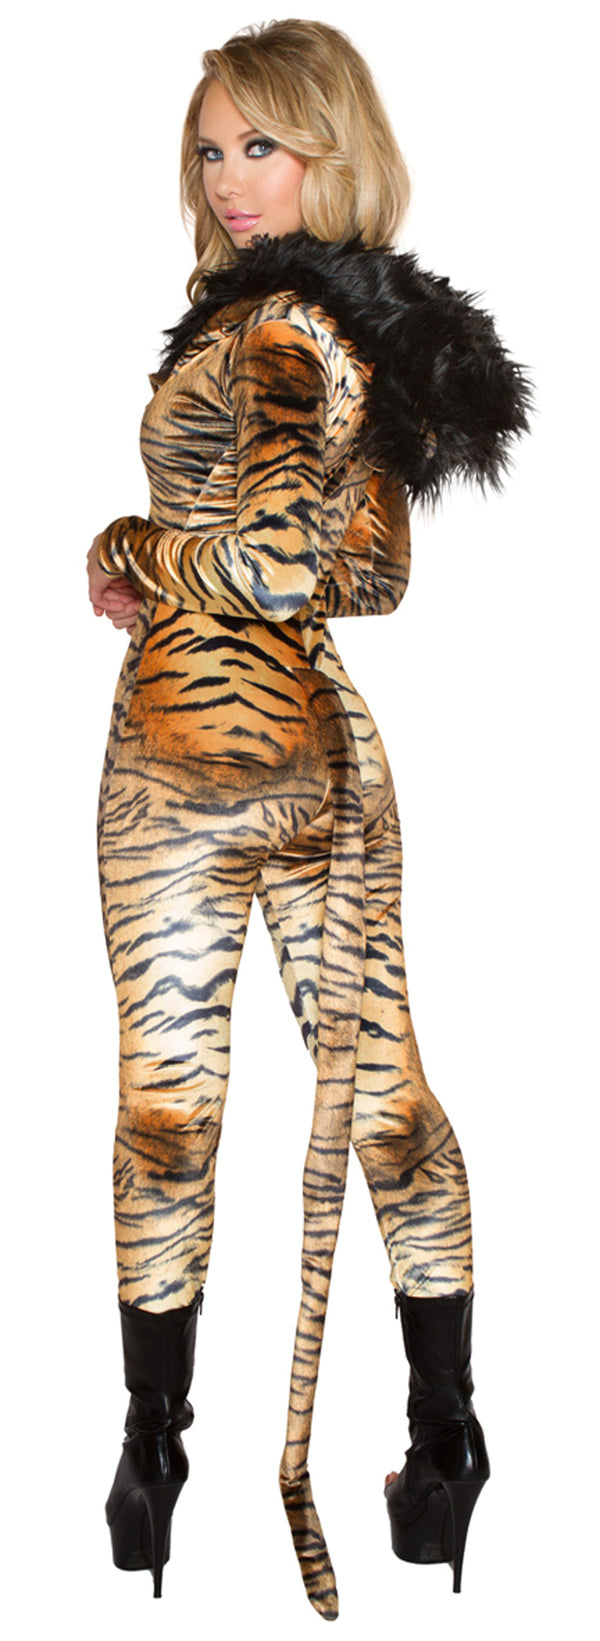 Tiger Catsuit Costume JVCC229 Back